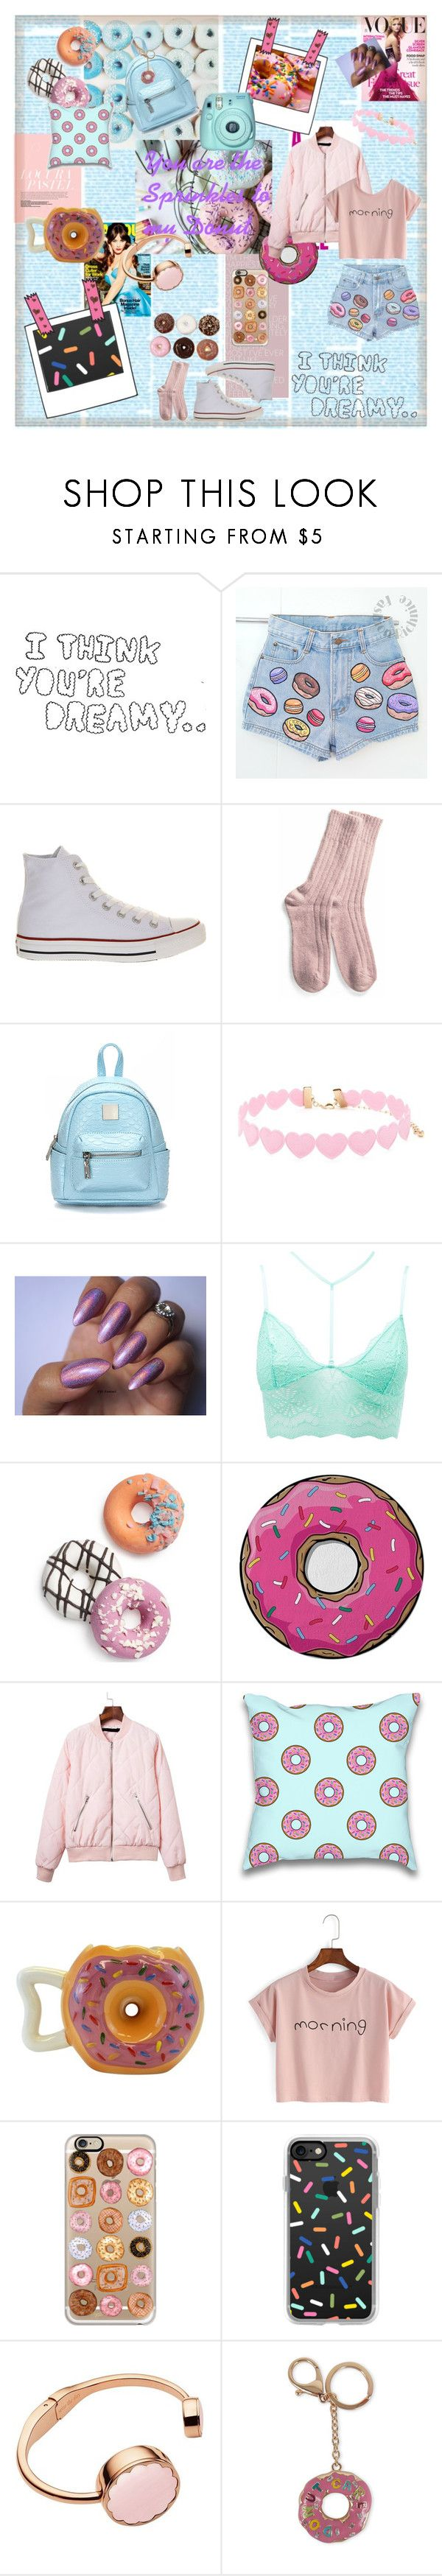 """""""Donut Days"""" by trinity-reece on Polyvore featuring Lazy Oaf, KAROLINA, Converse, Forever 21, Charlotte Russe, Celebrate Shop, Round Towel Co., Casetify, Kate Spade and Viola"""